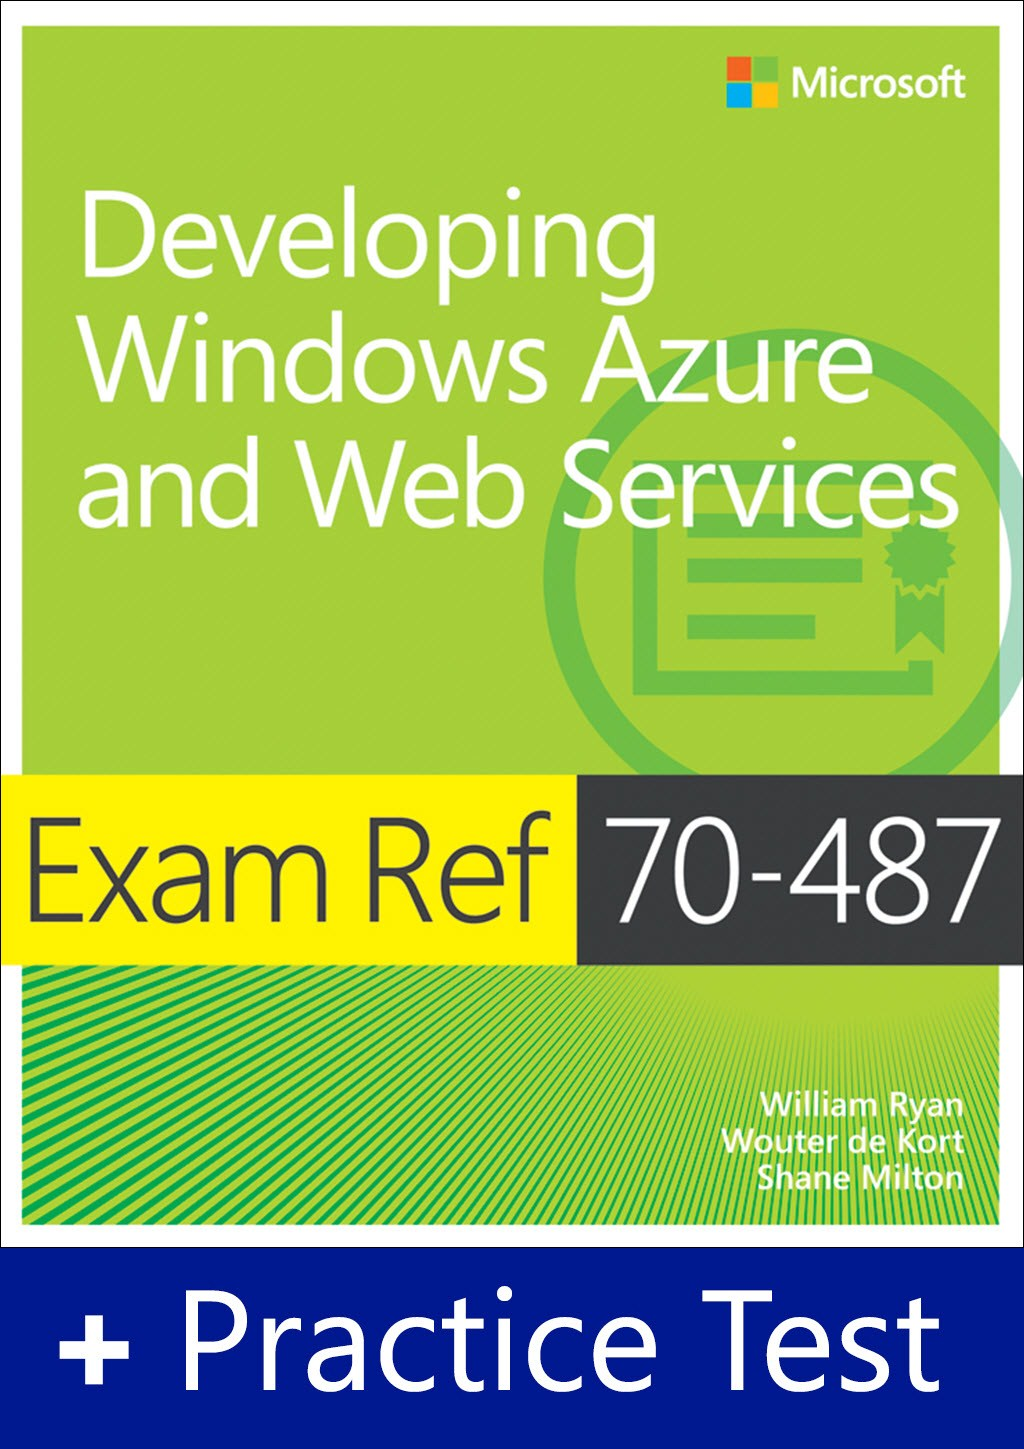 Exam Ref 70-487 Developing Windows Azure and Web Services with Practice Test